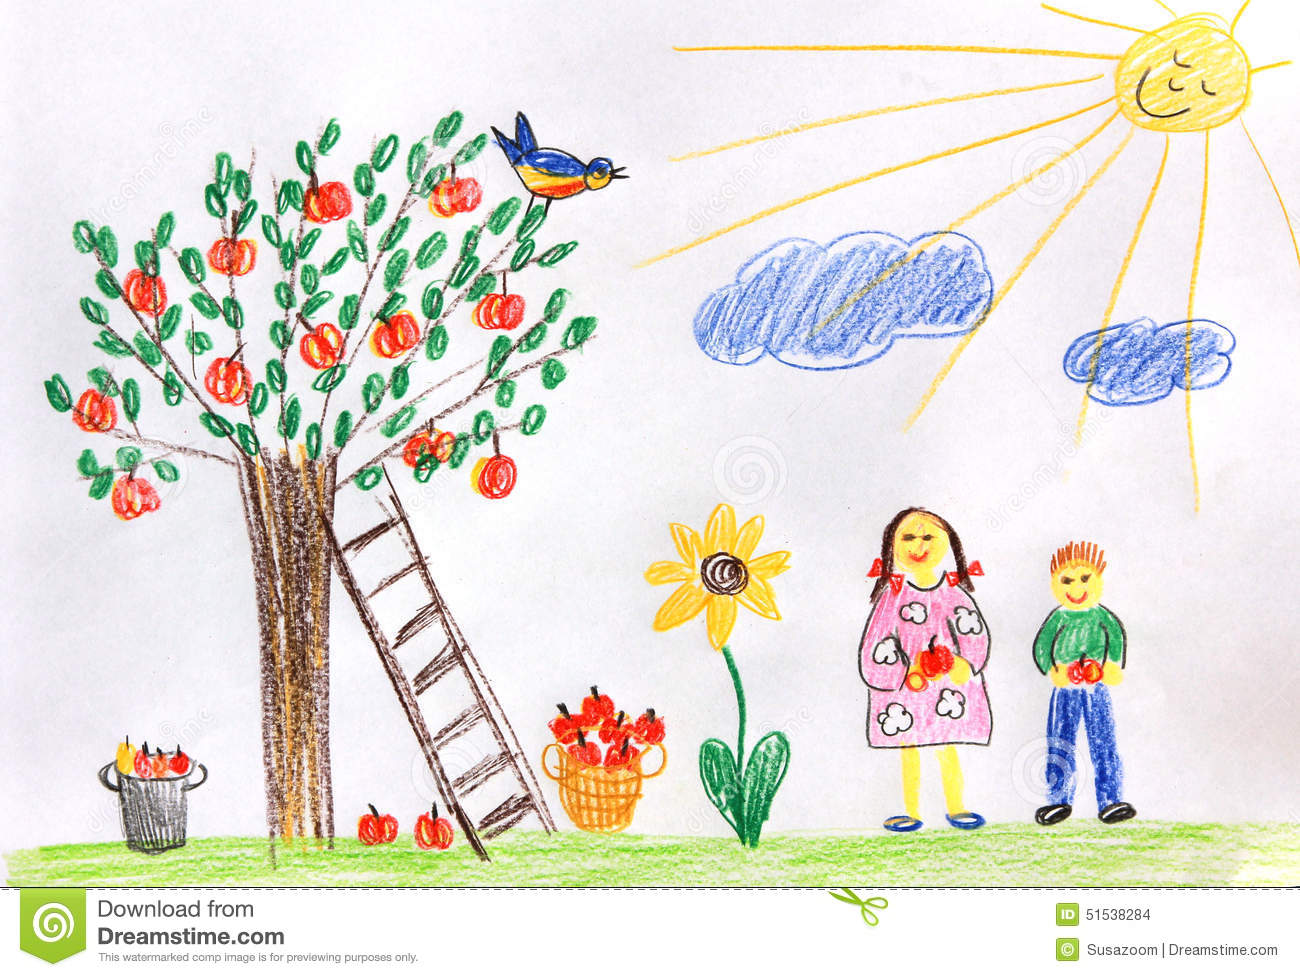 Garden drawing pictures - Royalty Free Illustration